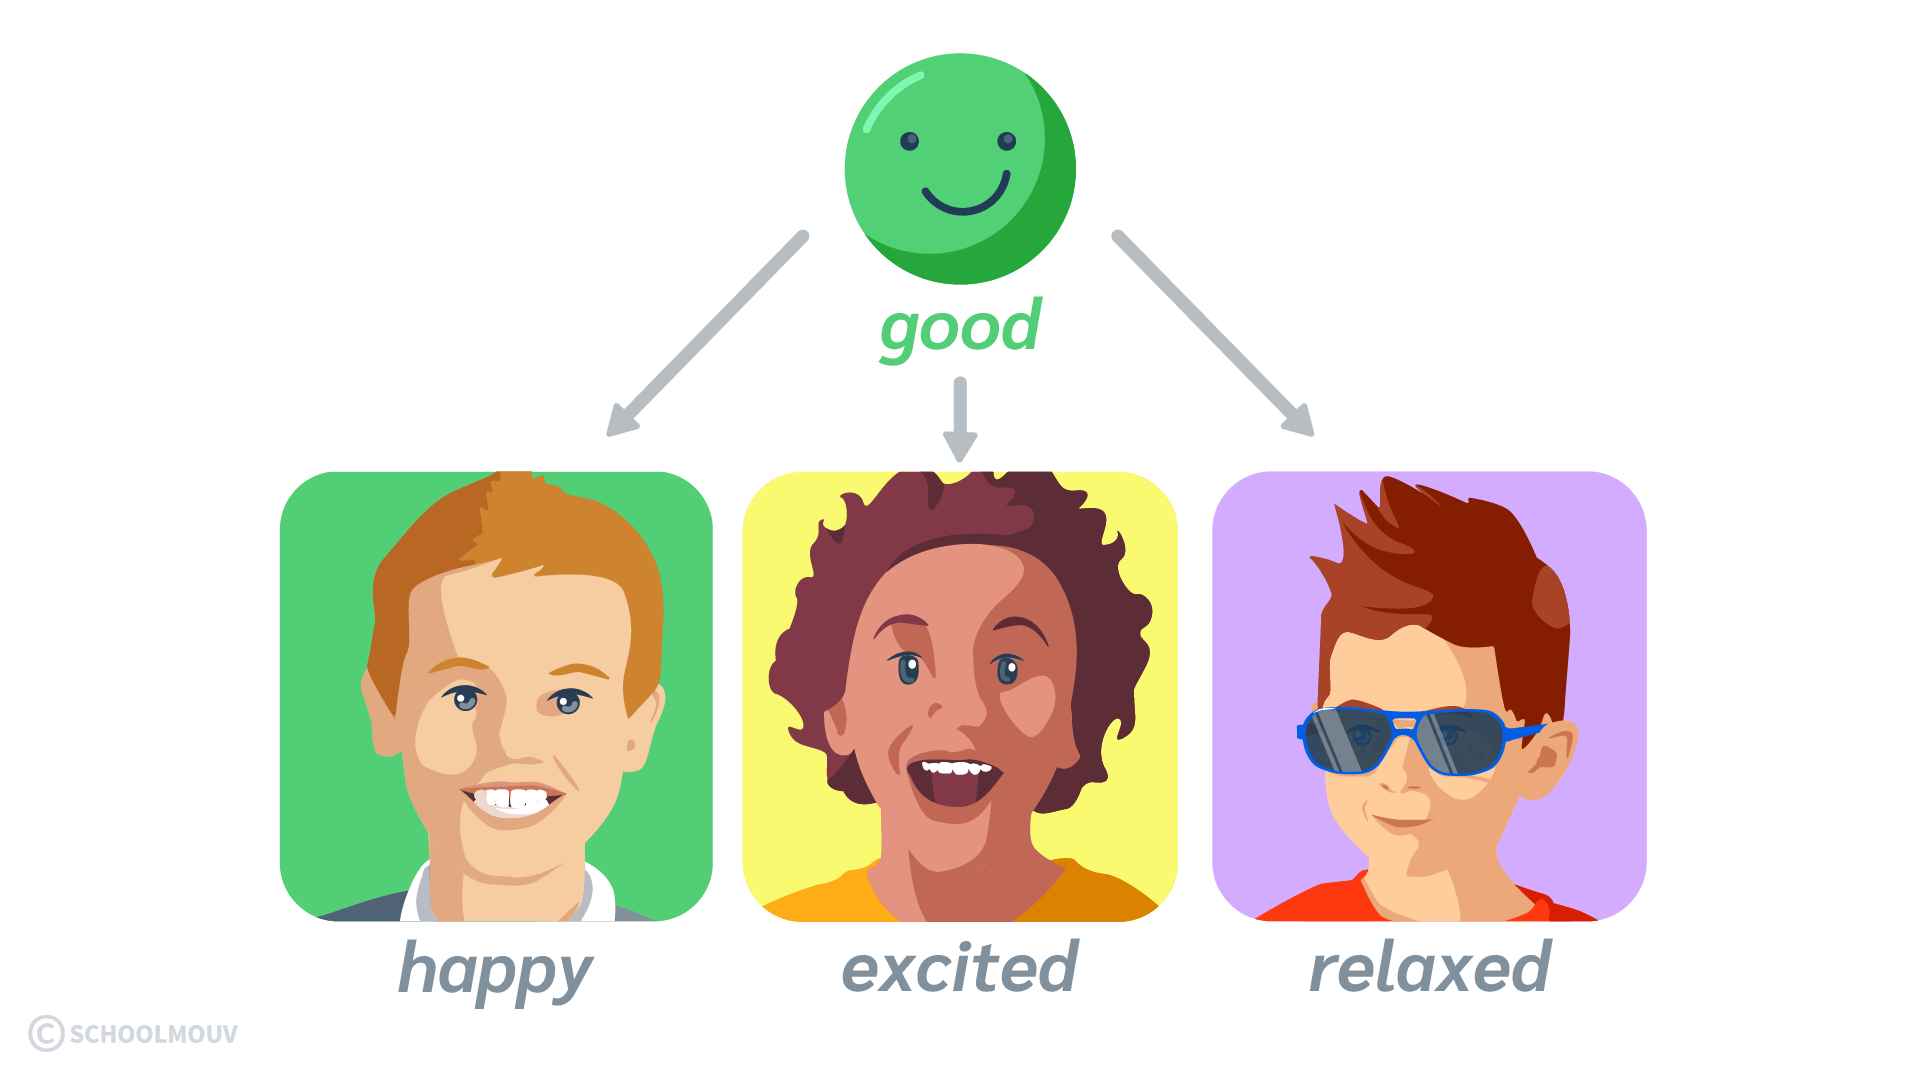 how are you good happy excited relaxed émotion humeur anglais